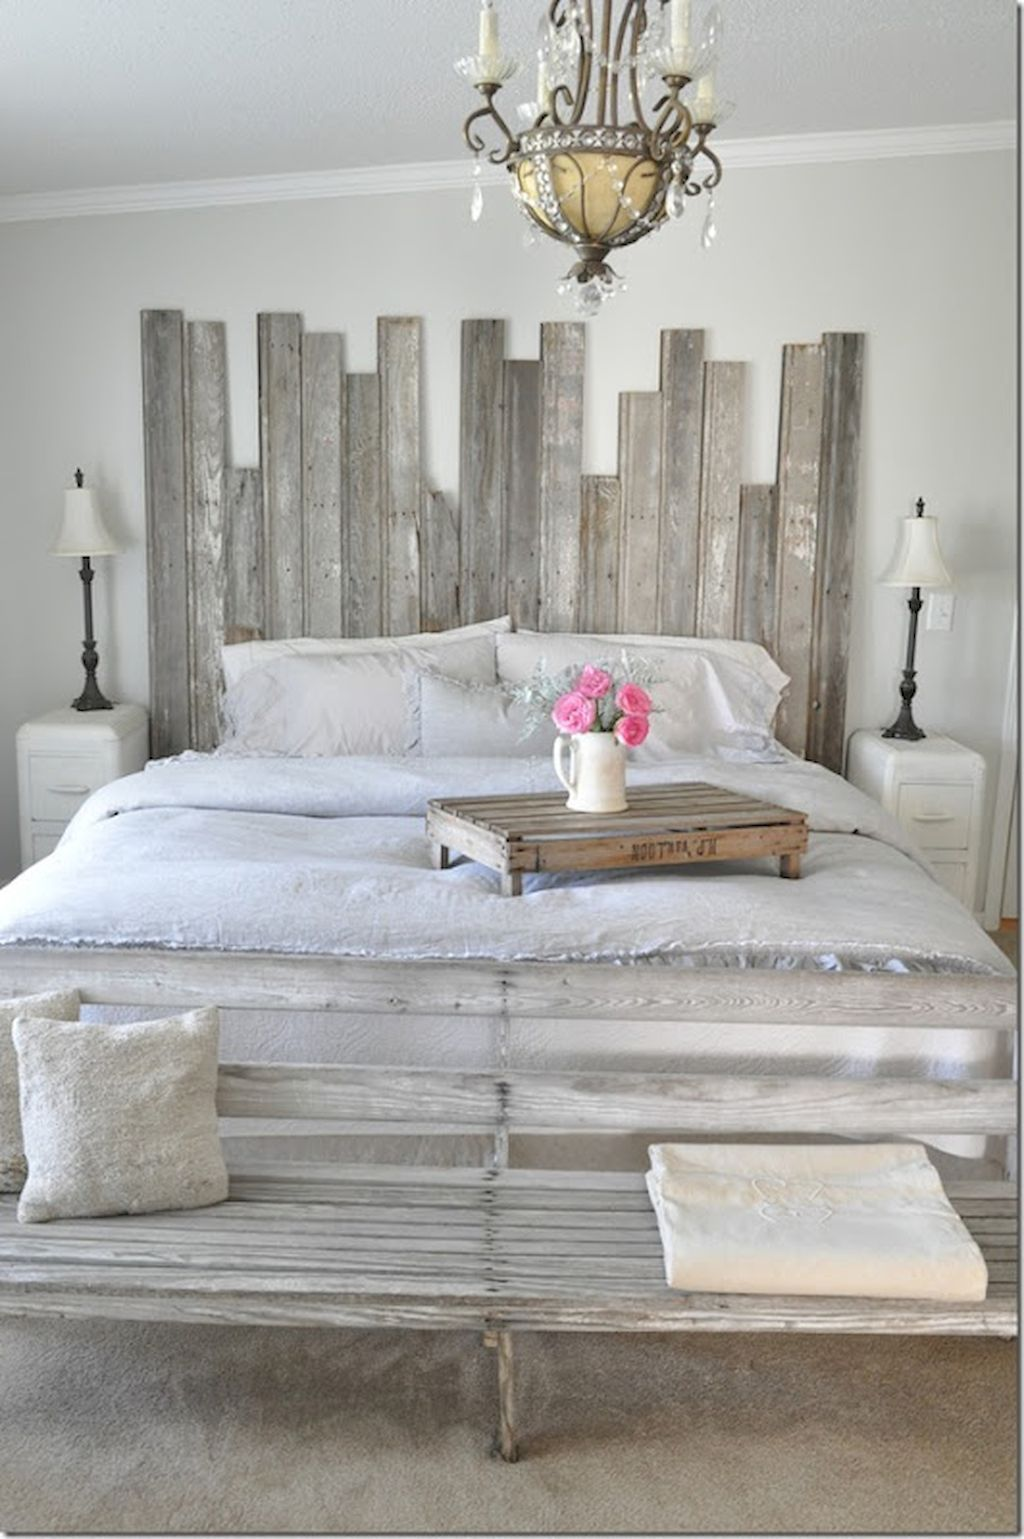 Fantastic End Of Bed Decor Ideas To Spice Up The Bedroom on Cheap:l2Opoiauzas= Bedroom Ideas  id=66179